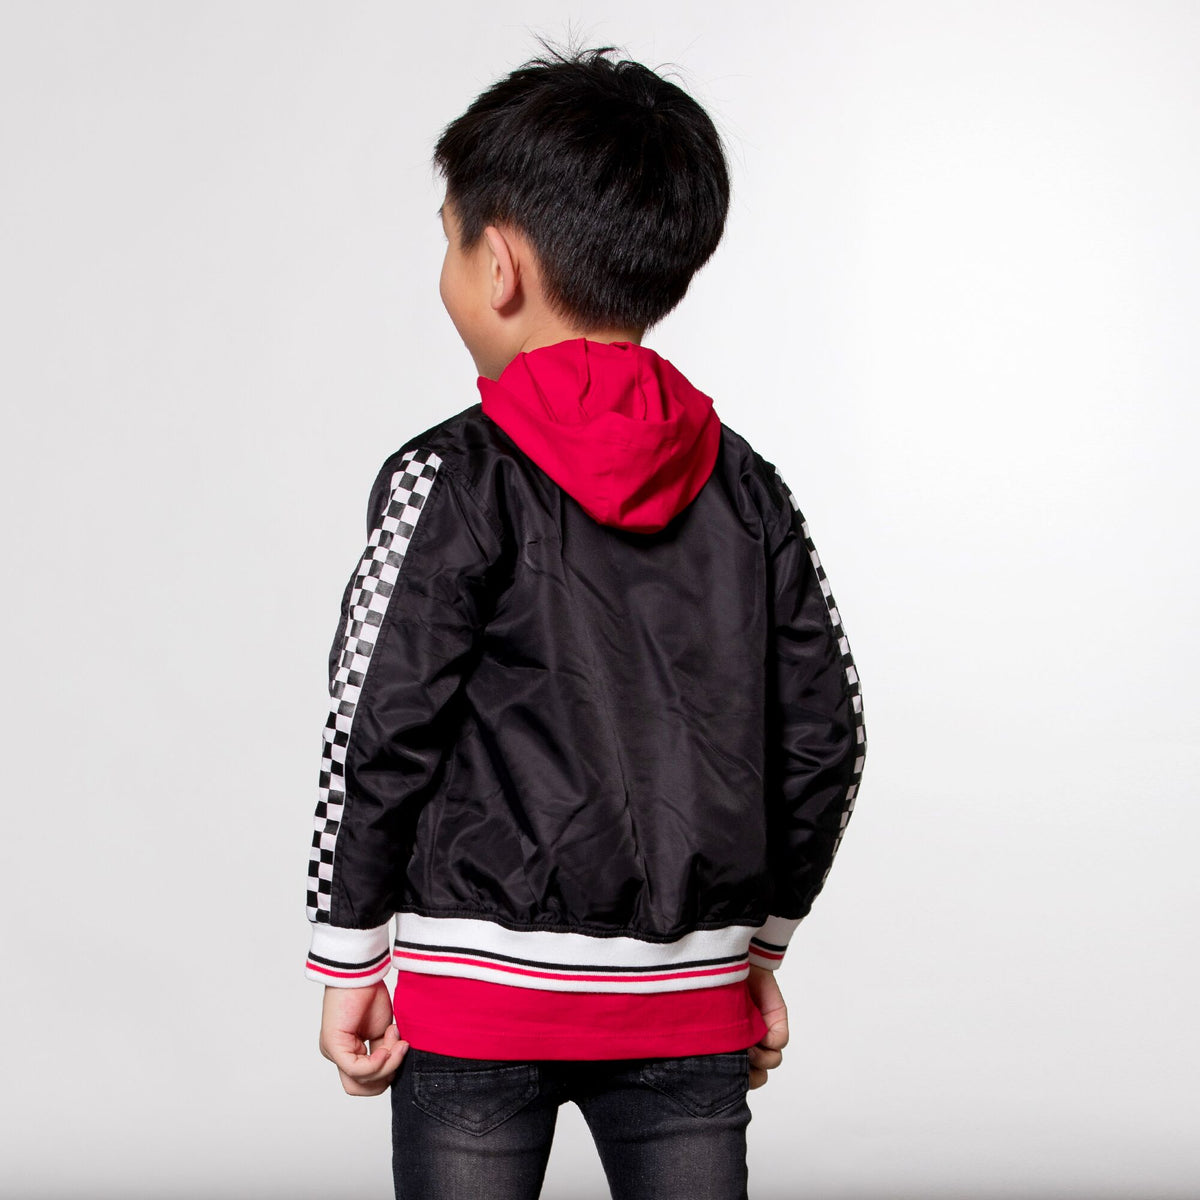 Boys Racing Bomber Jacket